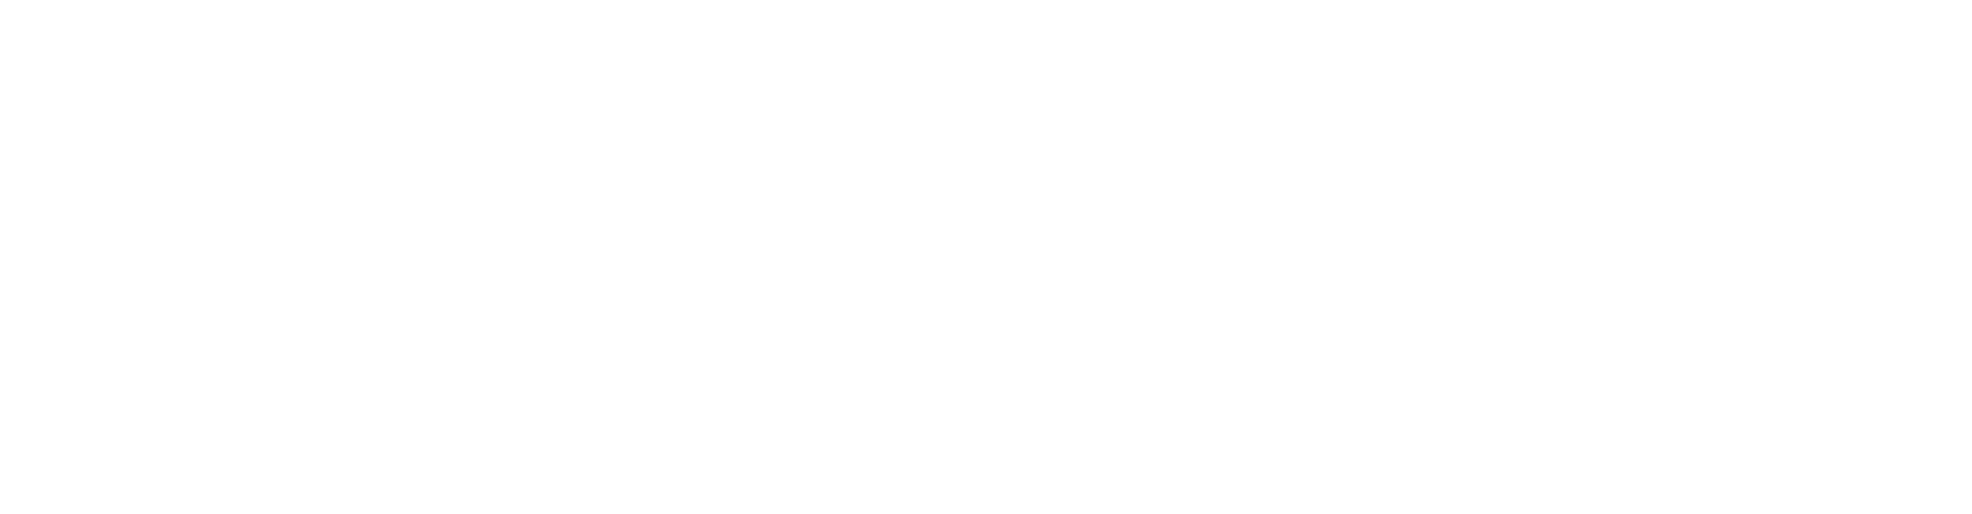 GoodFriend Self Storage East Harlem